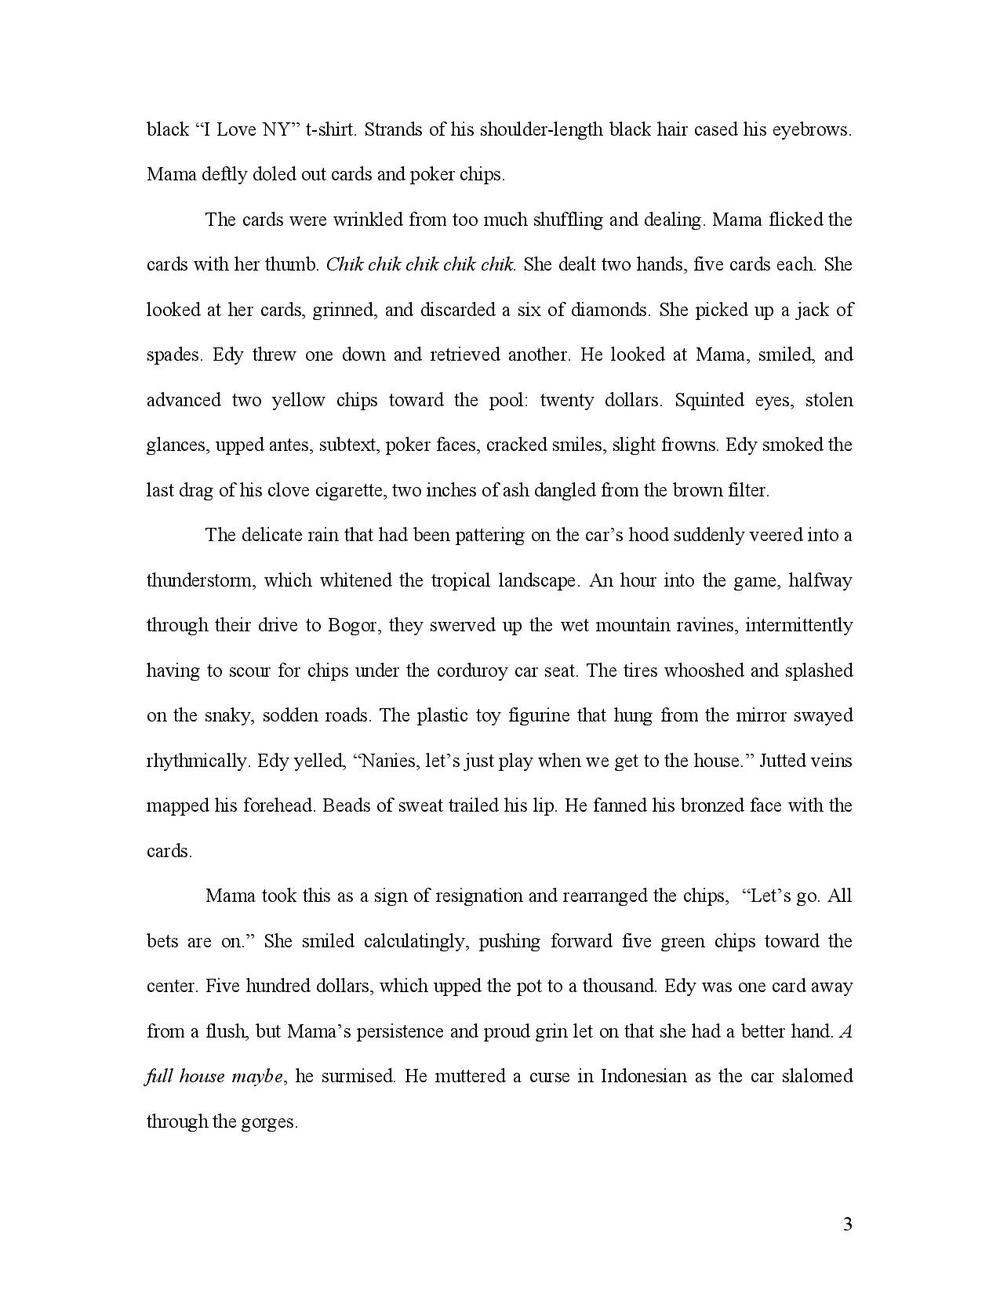 In The Cards_edit_excerpt-page-003.jpg